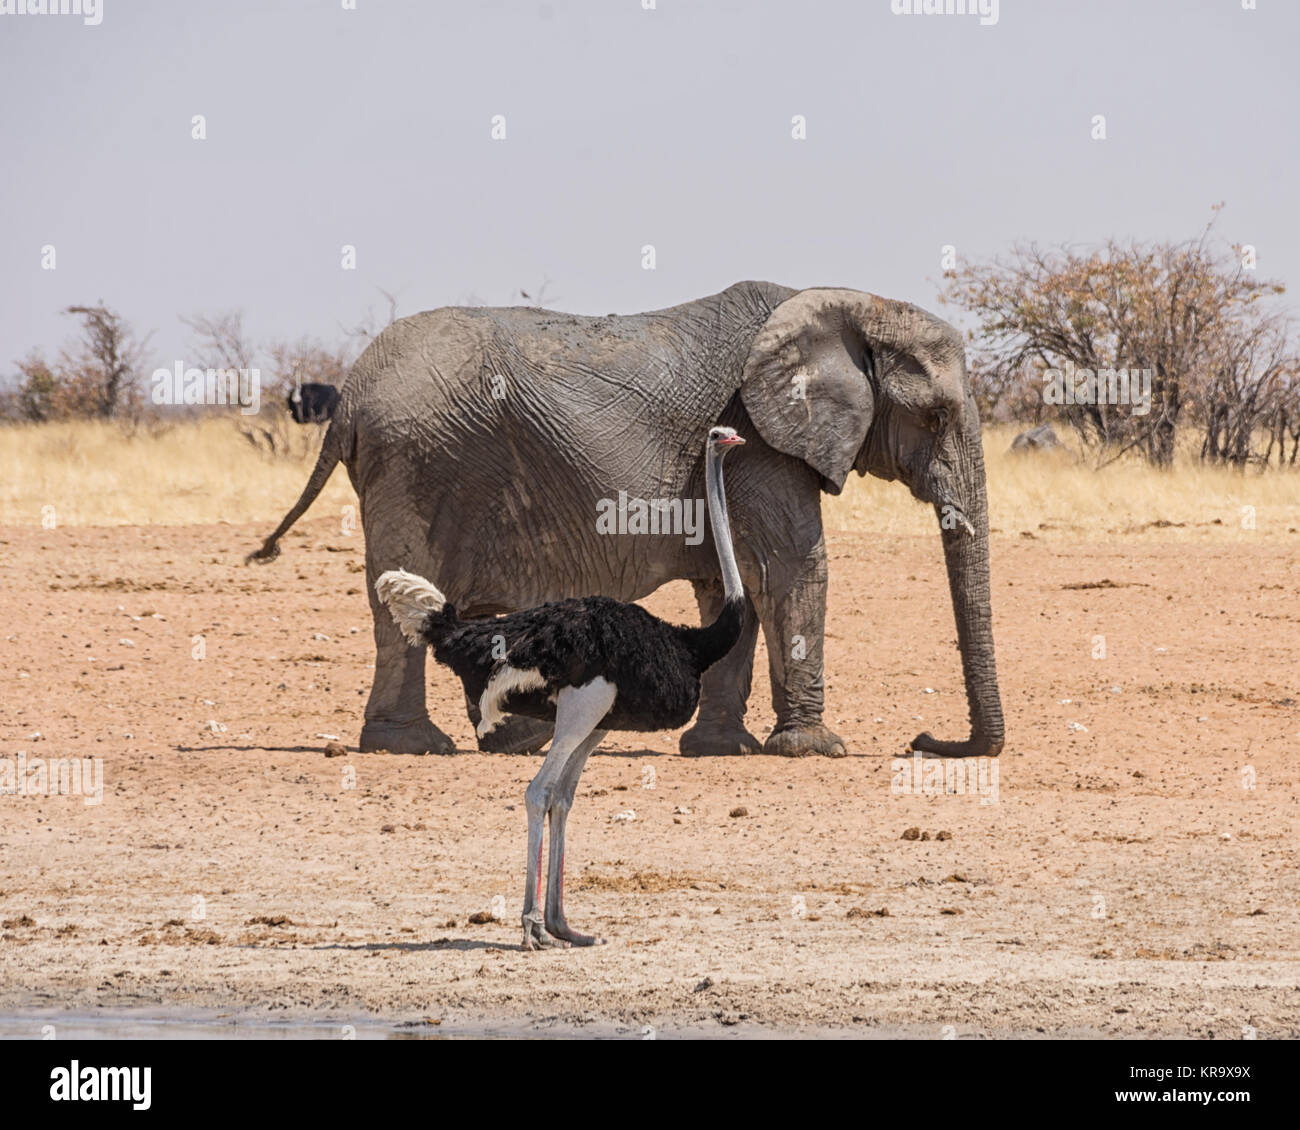 An Ostrich and an Elephant at a watering hole in the Namibian savanna Stock Photo